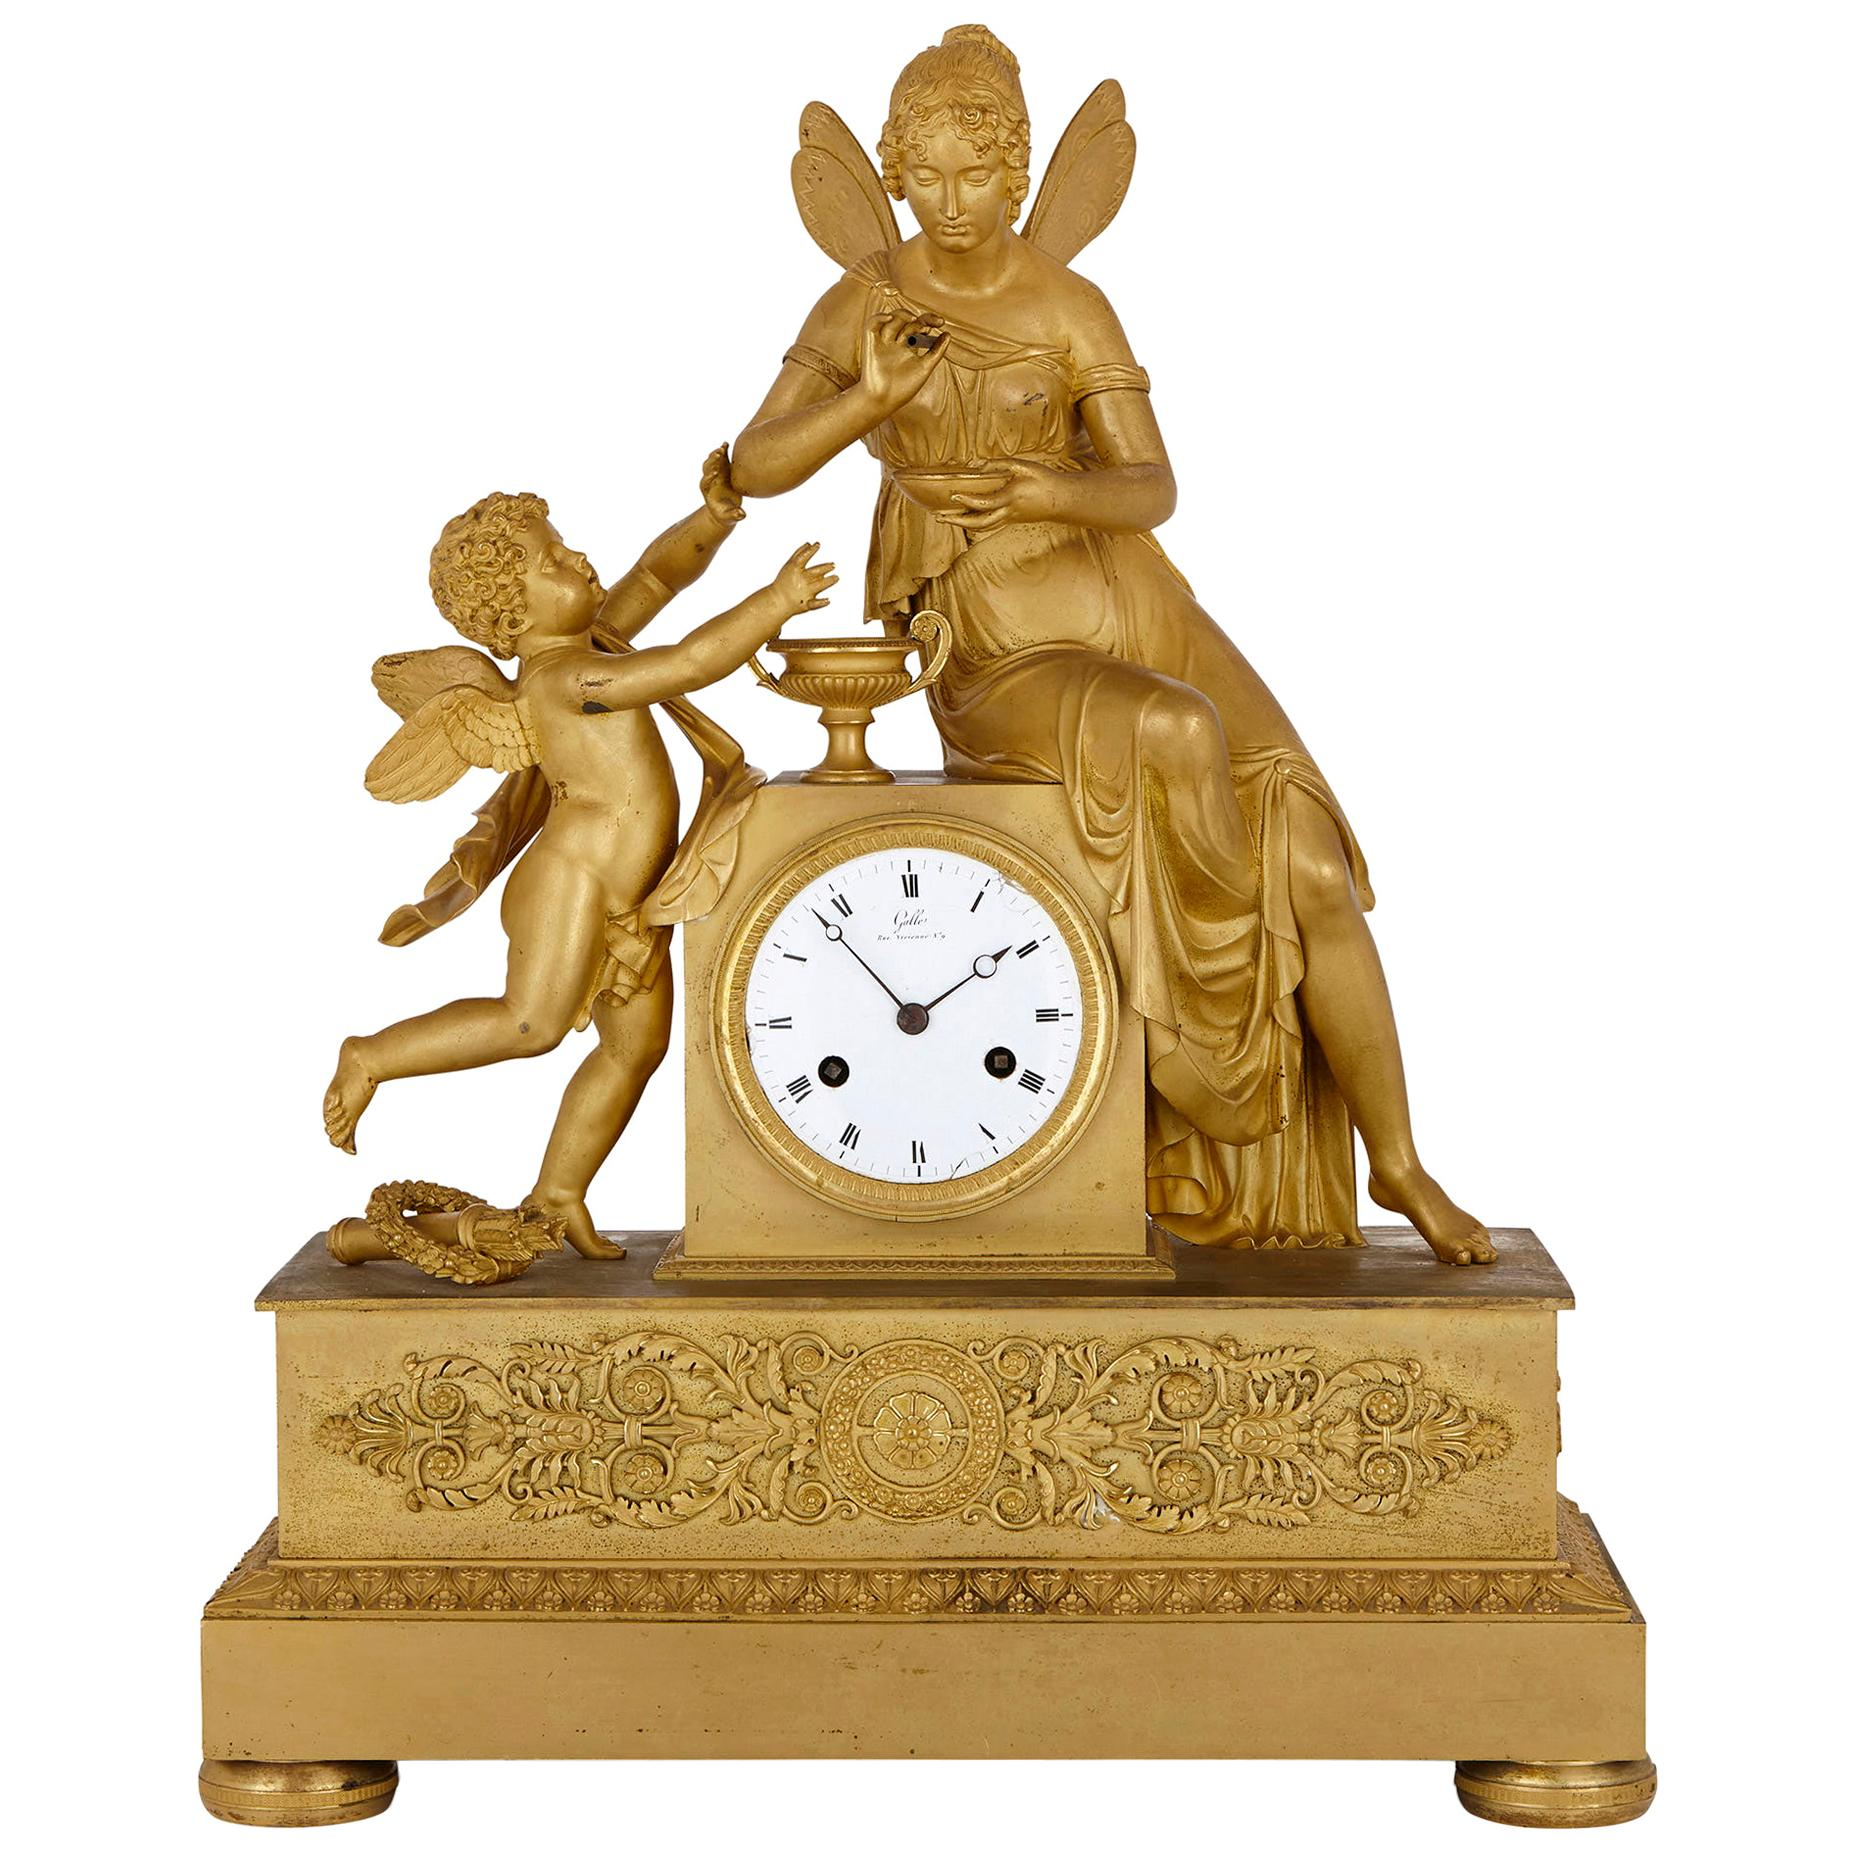 Empire Period Gilt Bronze Mantel Clock by Galle